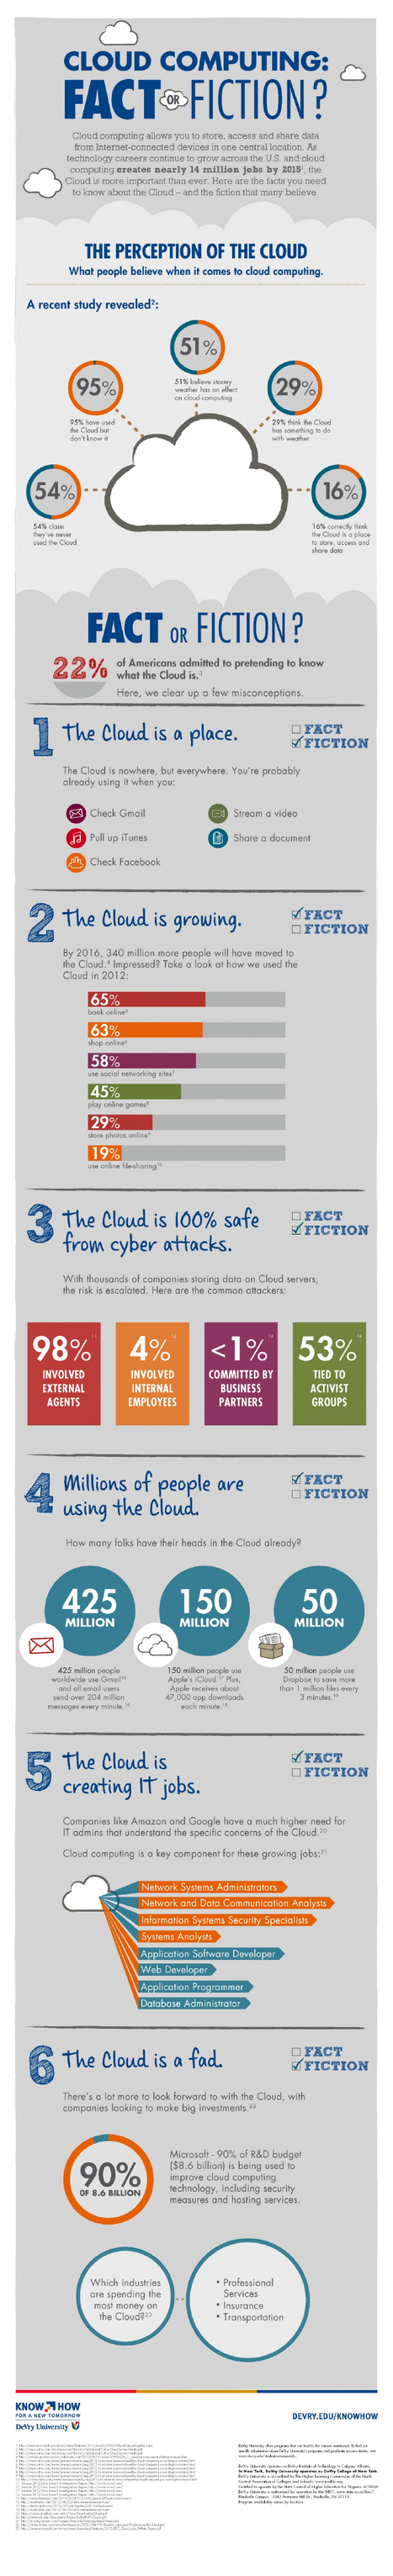 INFOGRAPHIC: Cloud computing! Fact or fiction? | digitalassetman | Scoop.it